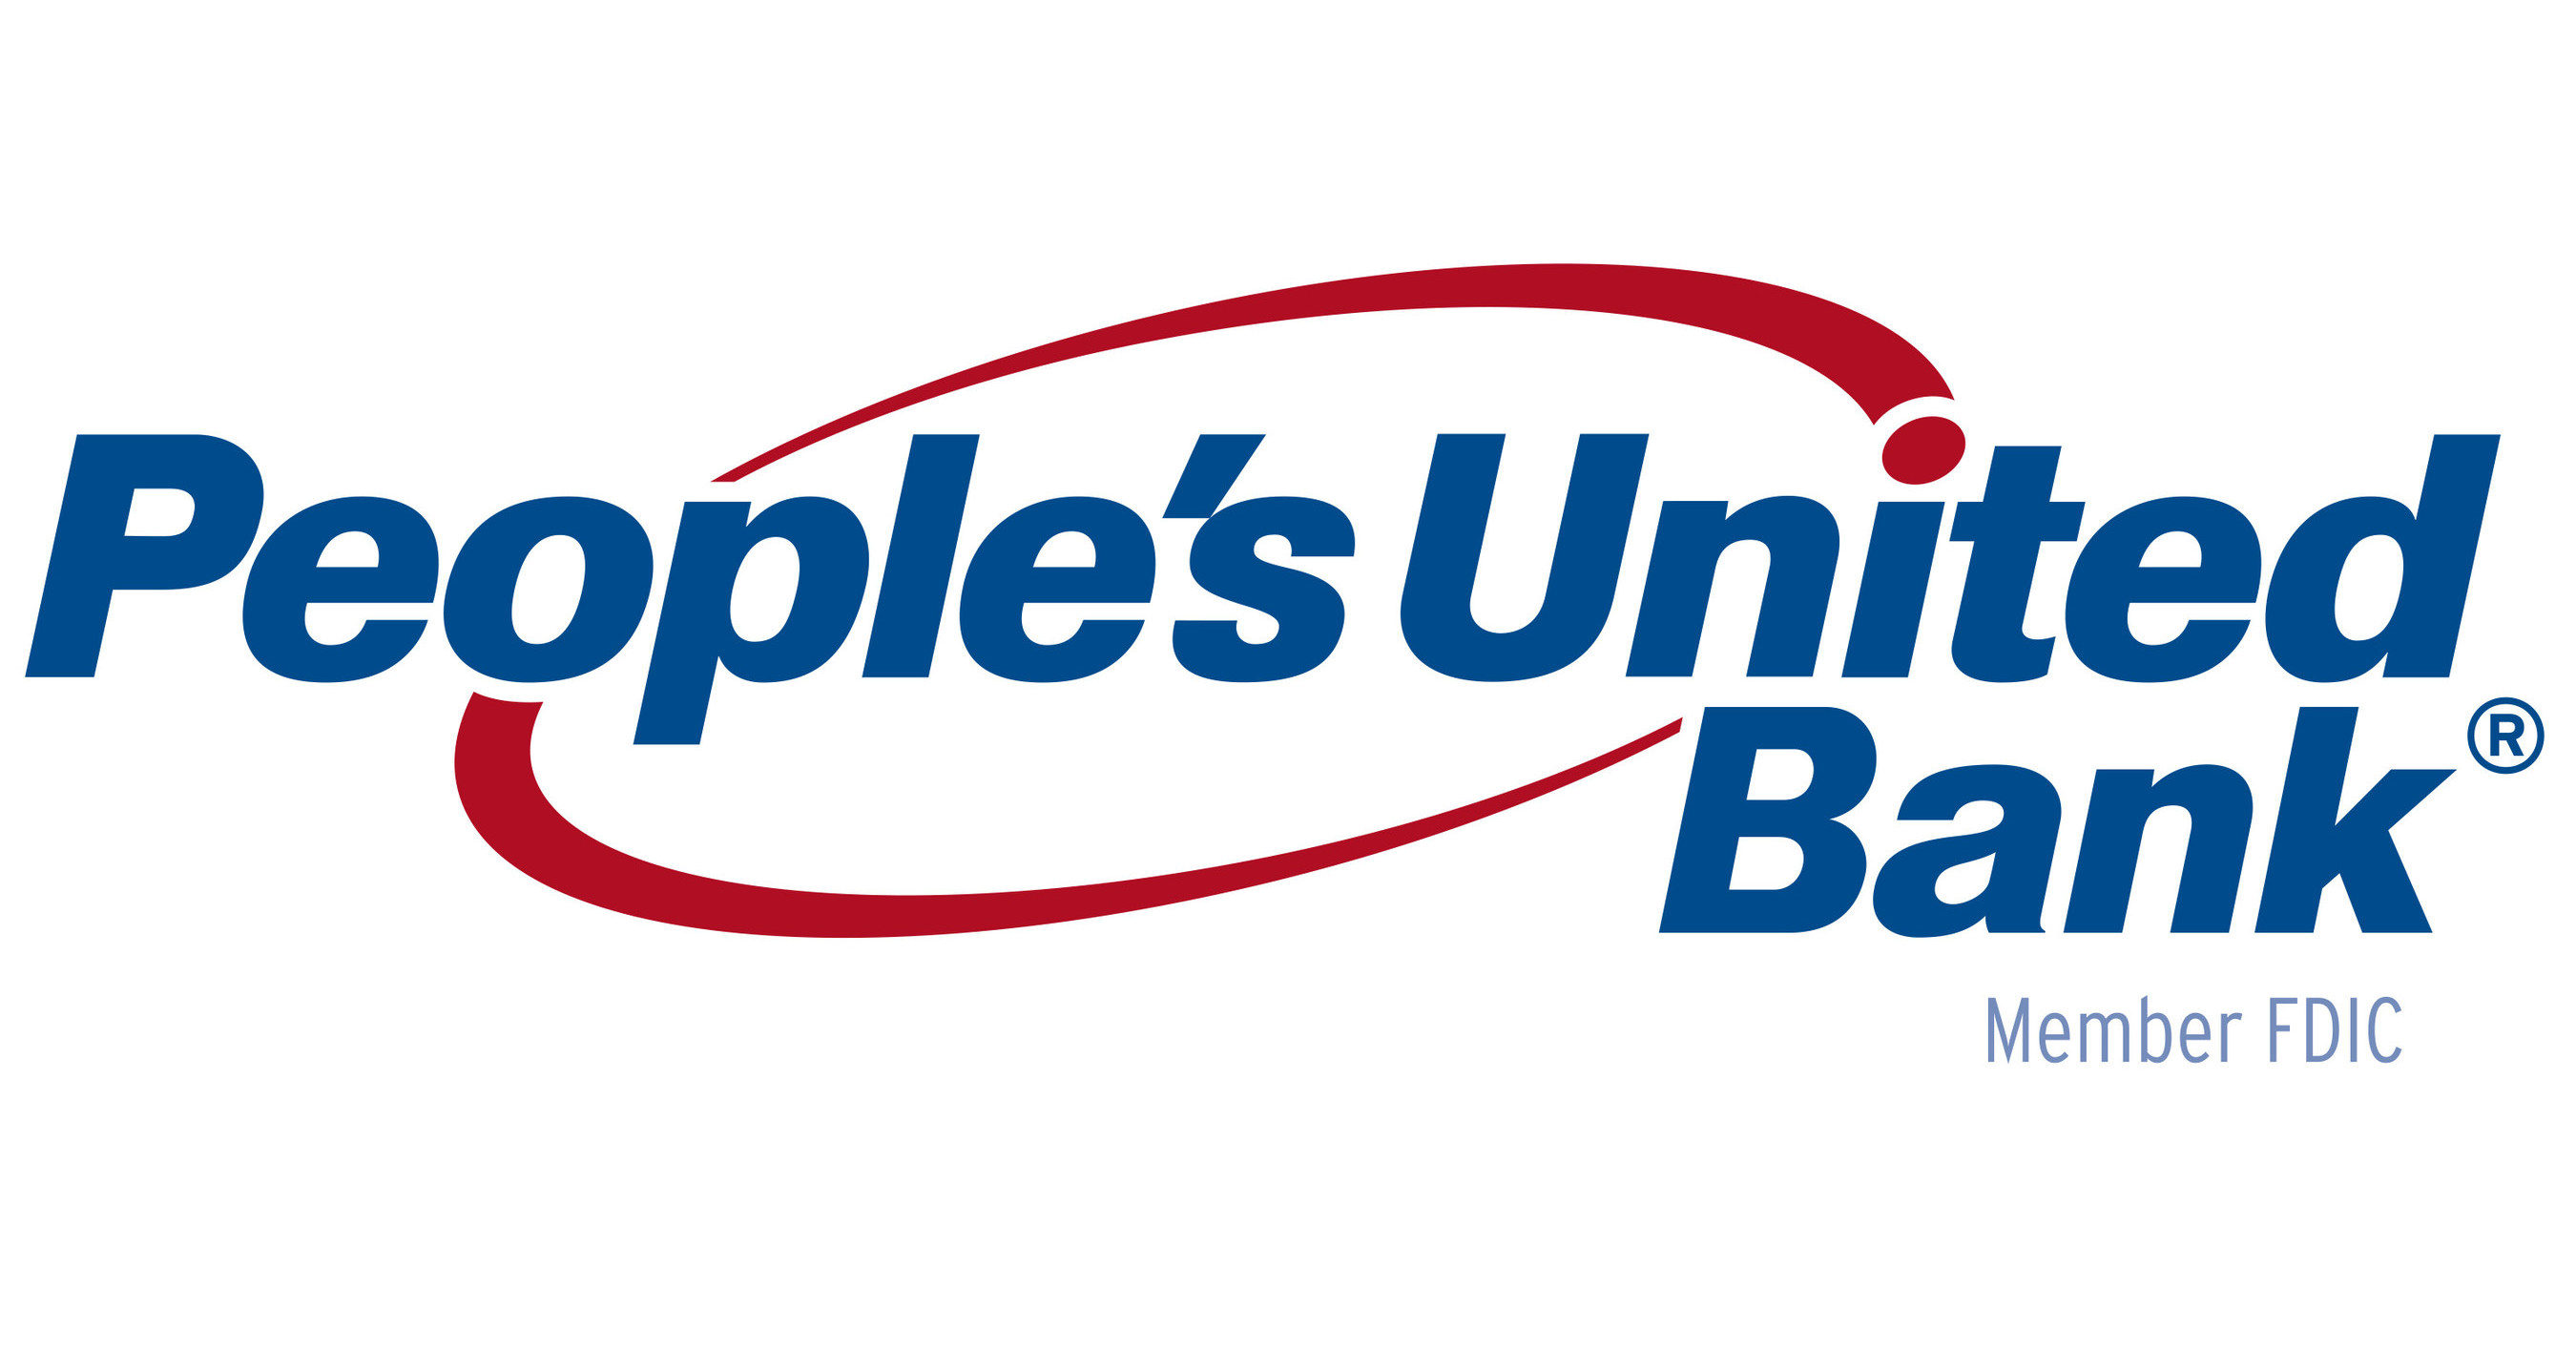 bank united peoples banking mobile savings sponsors account banks logos pc login bridgeport business financial app credit fdic connecticut accounts